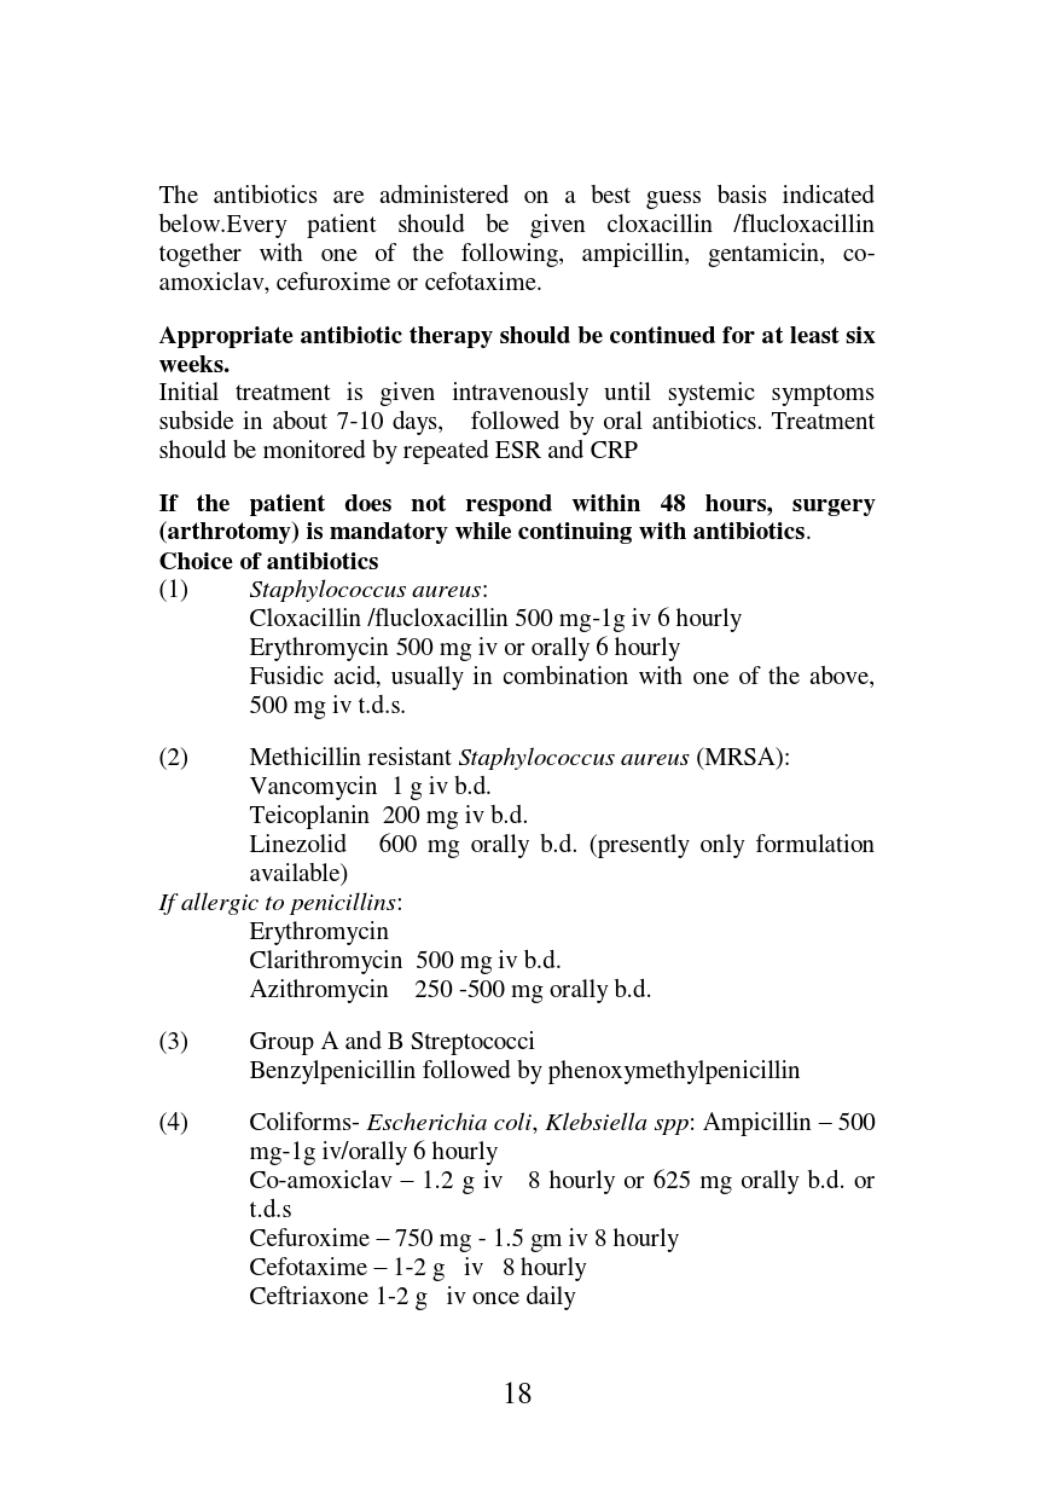 what type of antimicrobial agent is ampicillin